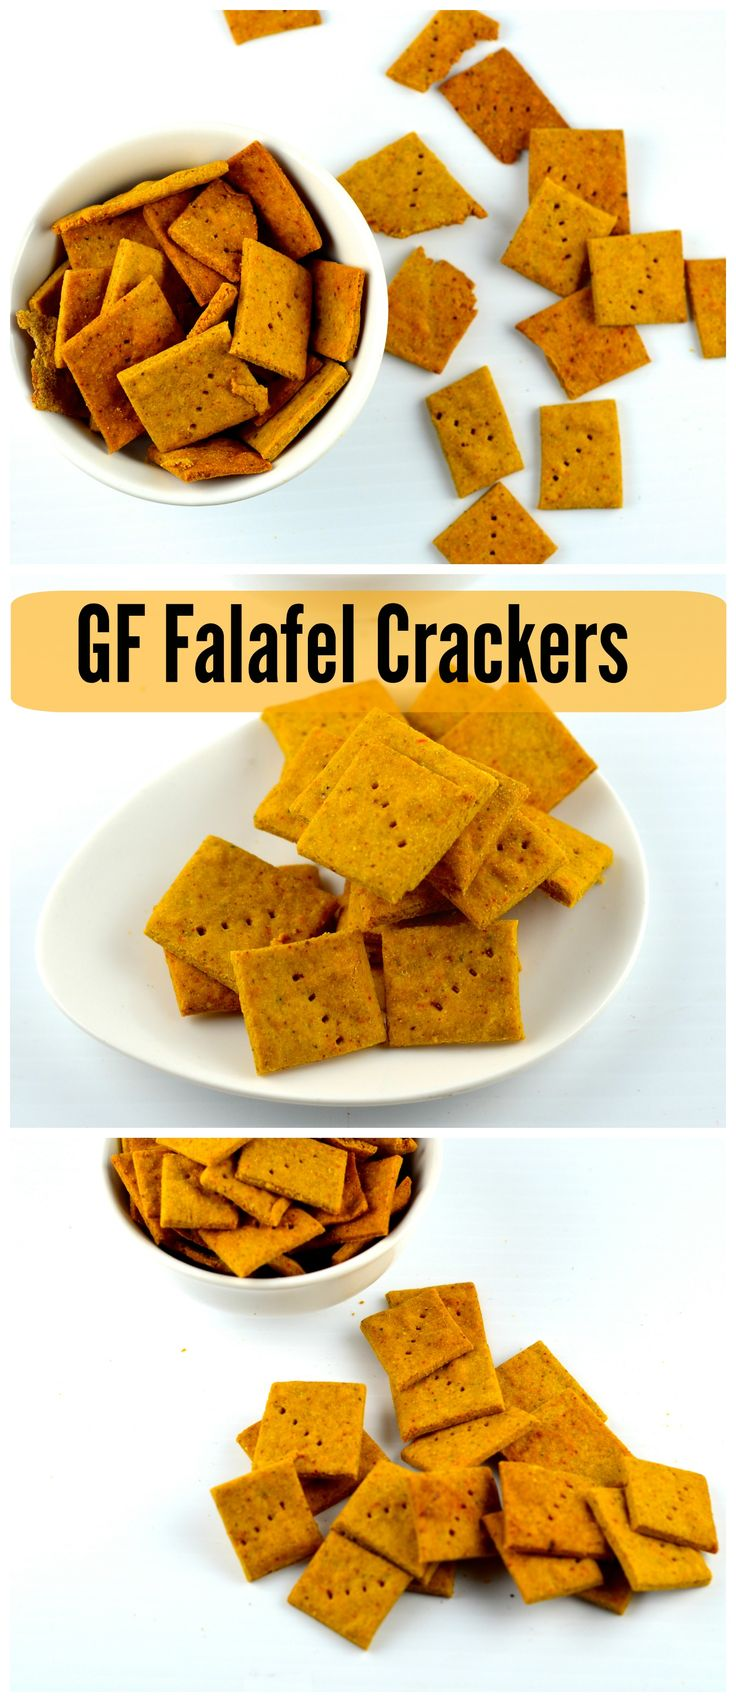 Gluten Free Falafel Crackers - Vegan, Gluten Free and totally irresistible! Are you getting ready for a Super Bowl or a party? Impress your host or your guests with these o so great falafel crackers. Vegan, vegetarian, Gluten Free and kosher.